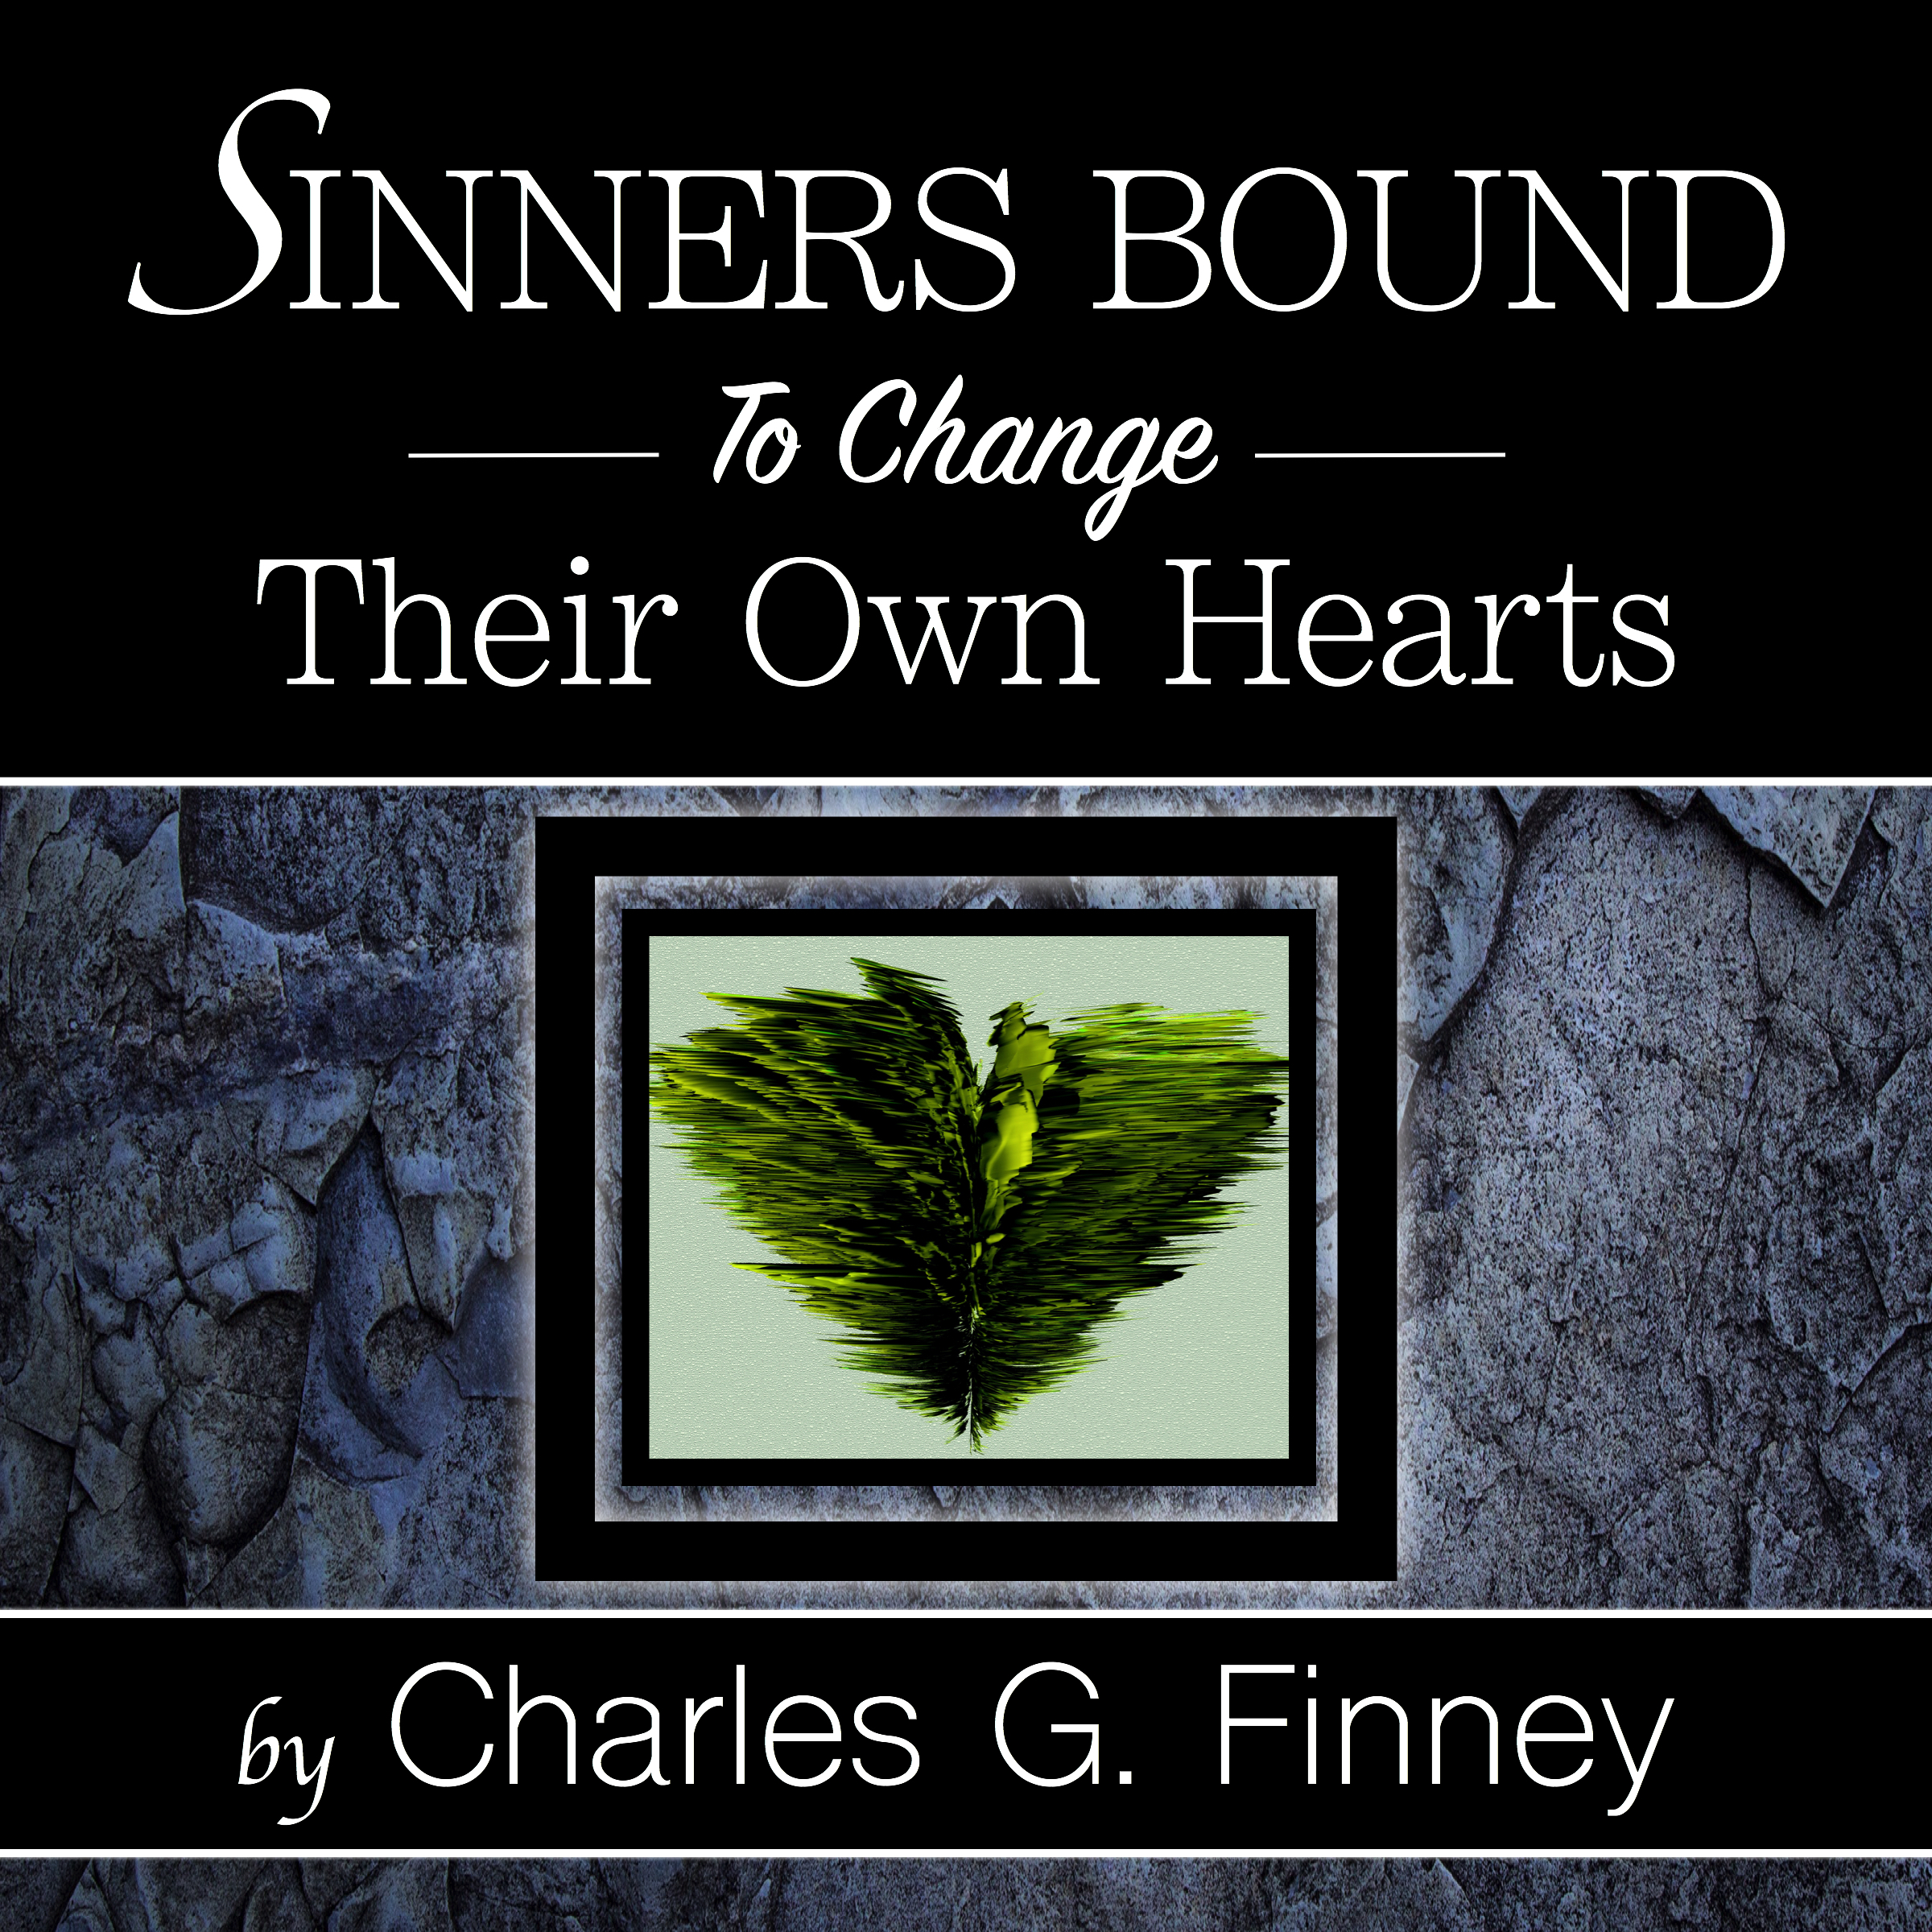 Audiobook Front Cover (Sinners Bound) - jpeg.jpg